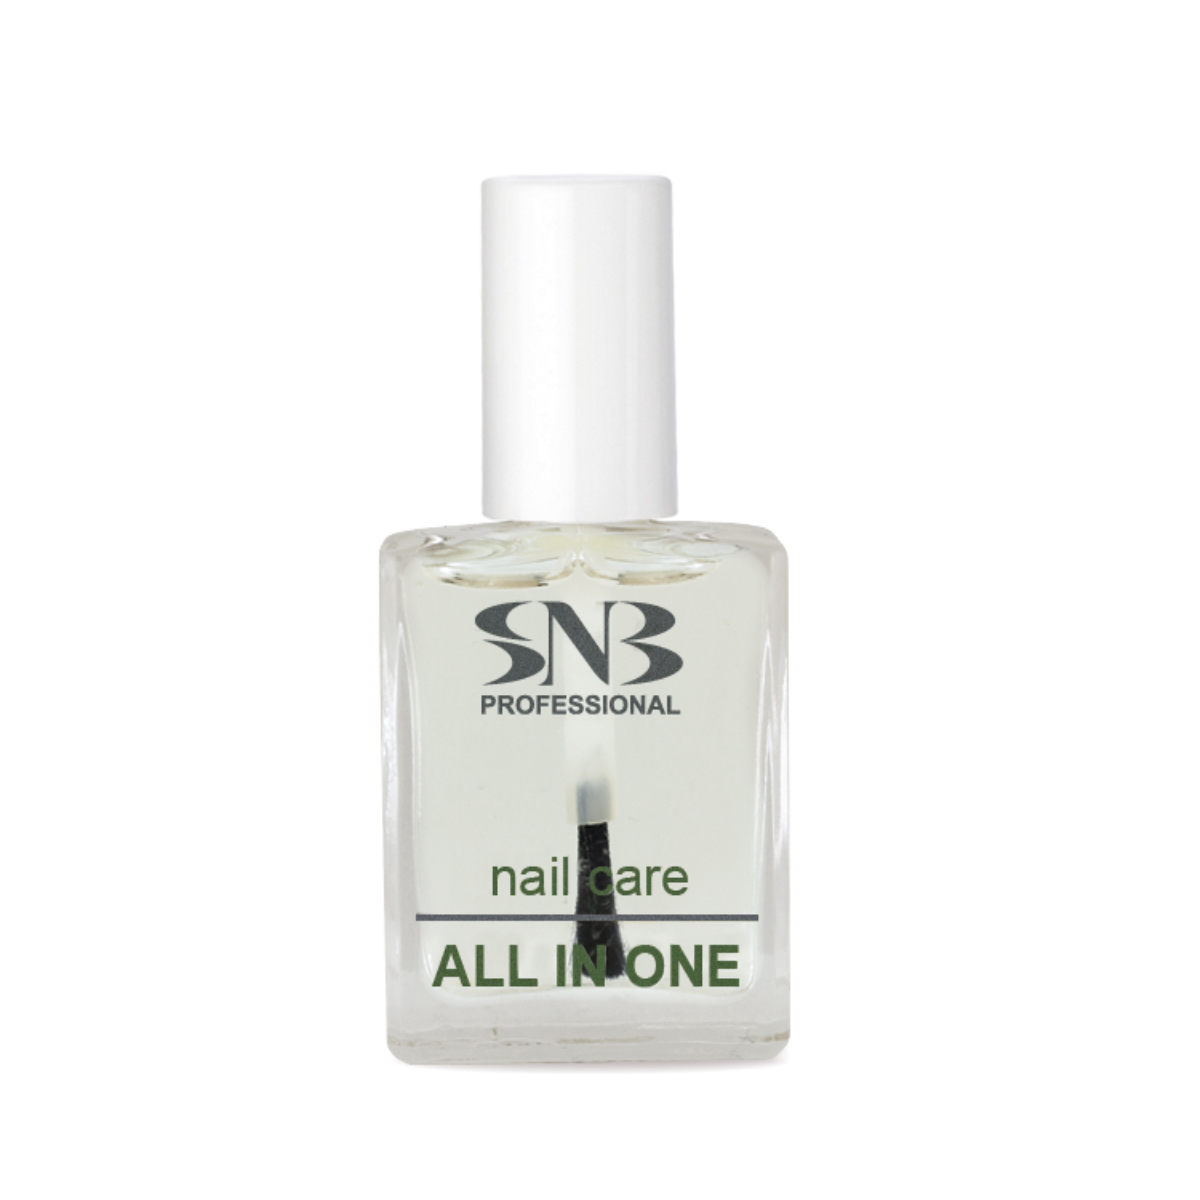 All in One - Nail Care, Base Coat, Top Coat 15 ml